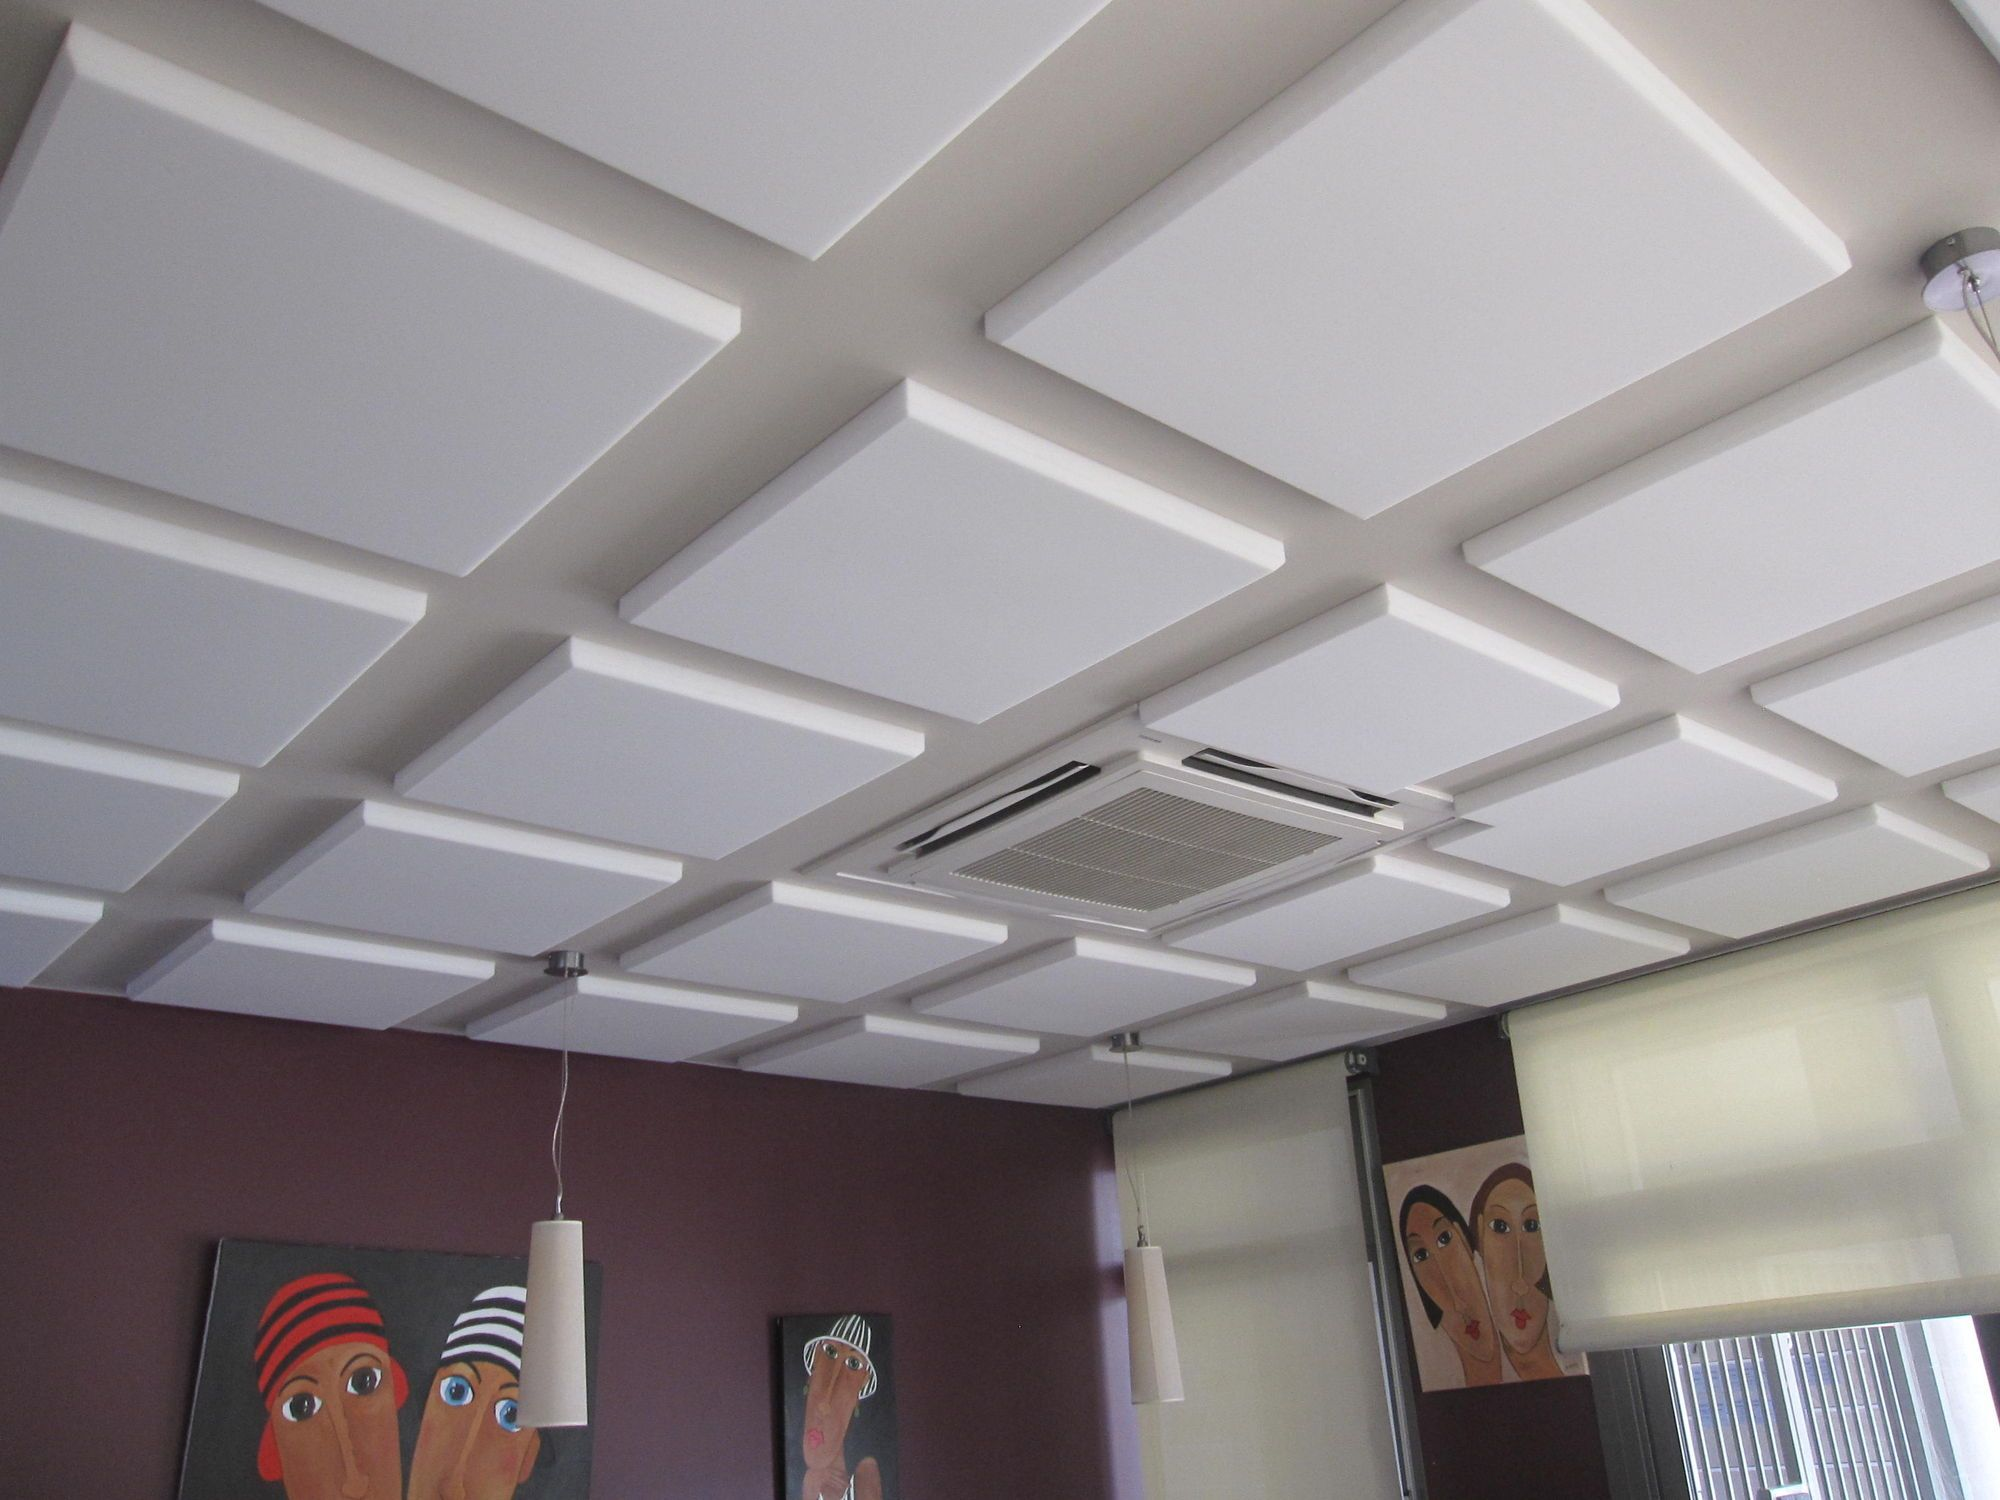 Alluring Drop Ceiling Tile Panels Idea In White Color With